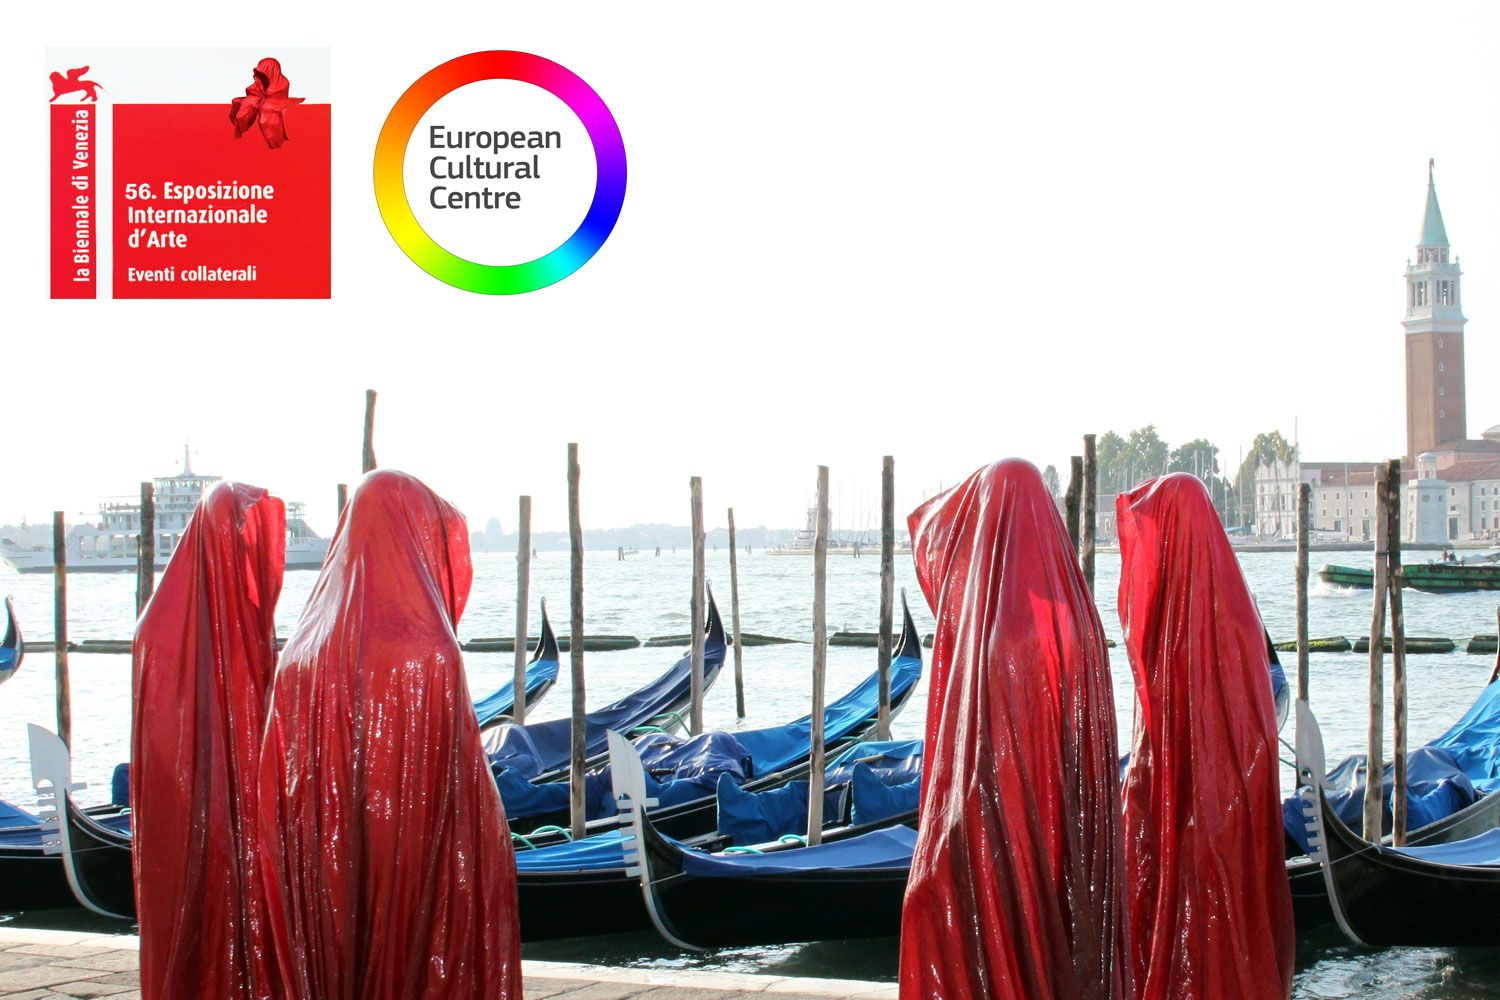 The European Cultural Centre - Venice Biennale- Personal Structures - Crossing Borders at Palazzo Bembo and Palazzo Mora - Global Art Affairs Foundation - Guardians of Time Manfred Kili Kielnhofer